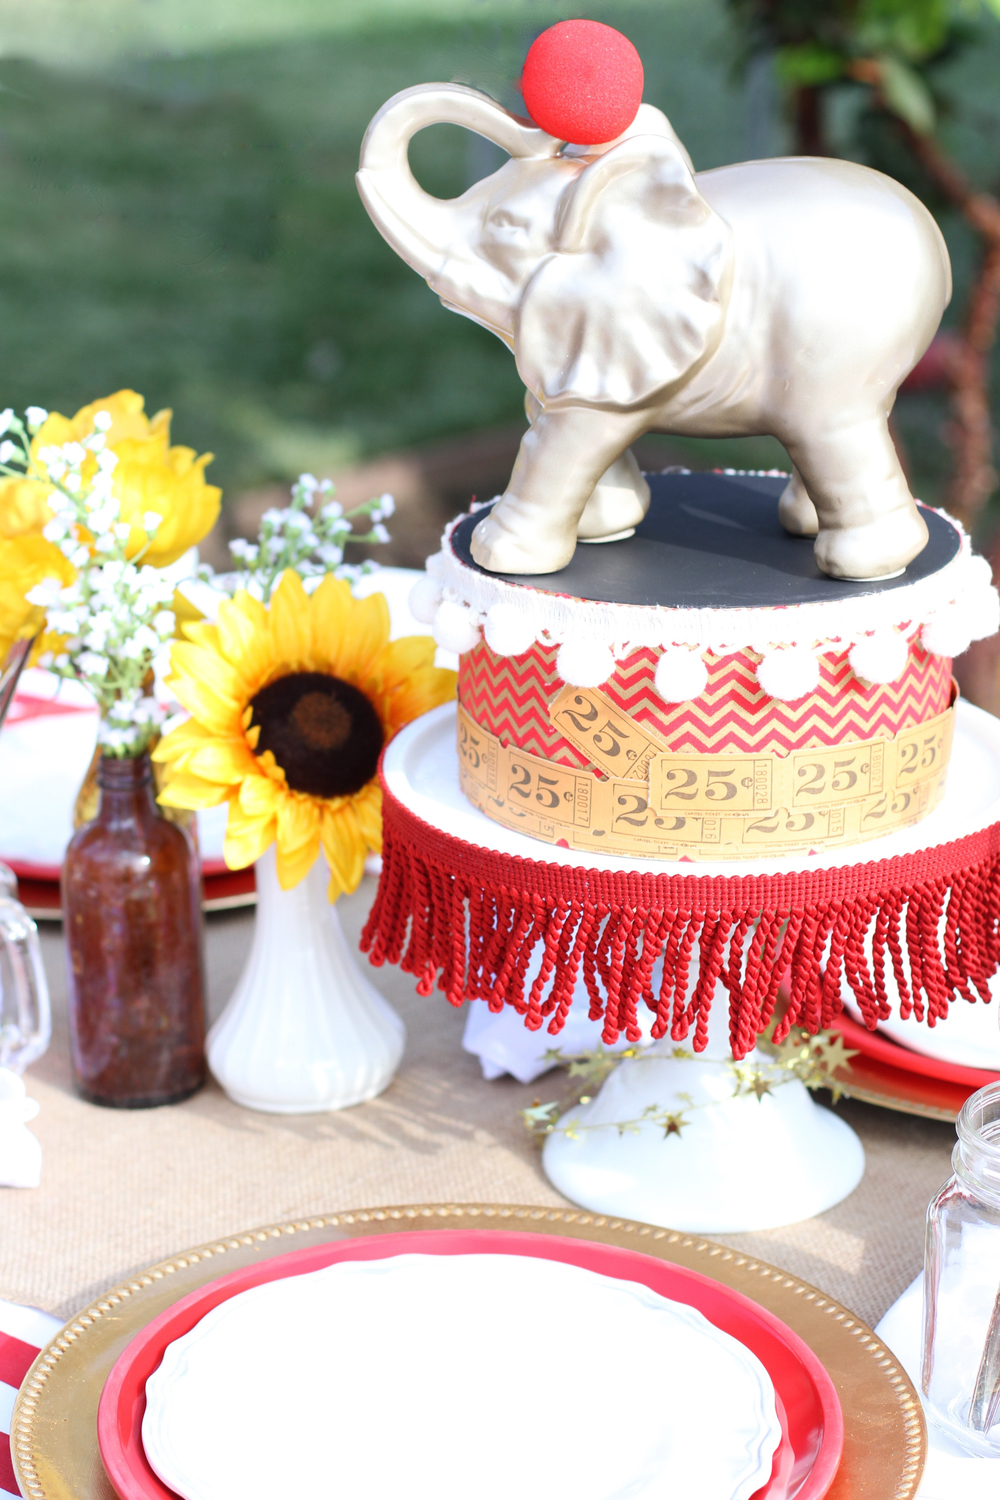 The best party on Earth! A perfectly executed circus themed party - Prepackaged and ready to rent from @inJOYtheParty!